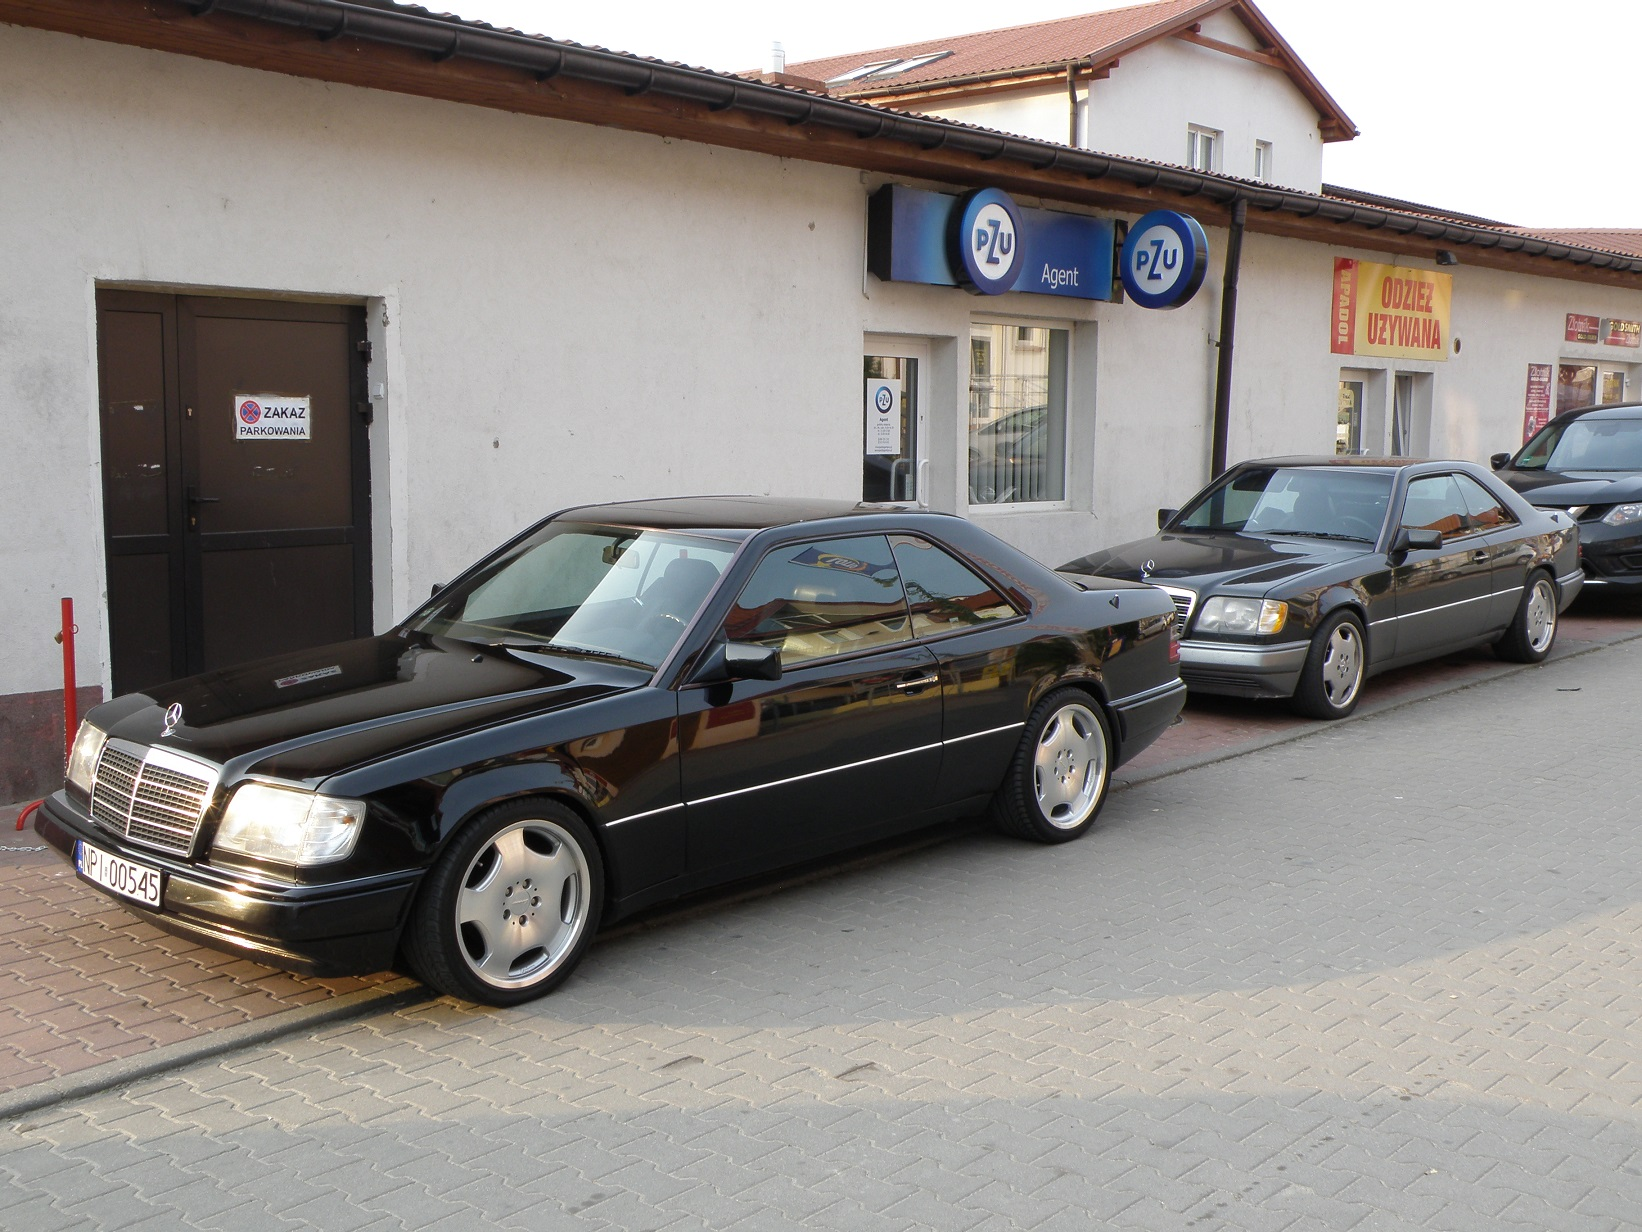 http://124coupe.pl/hosting/images/1471726039.jpg